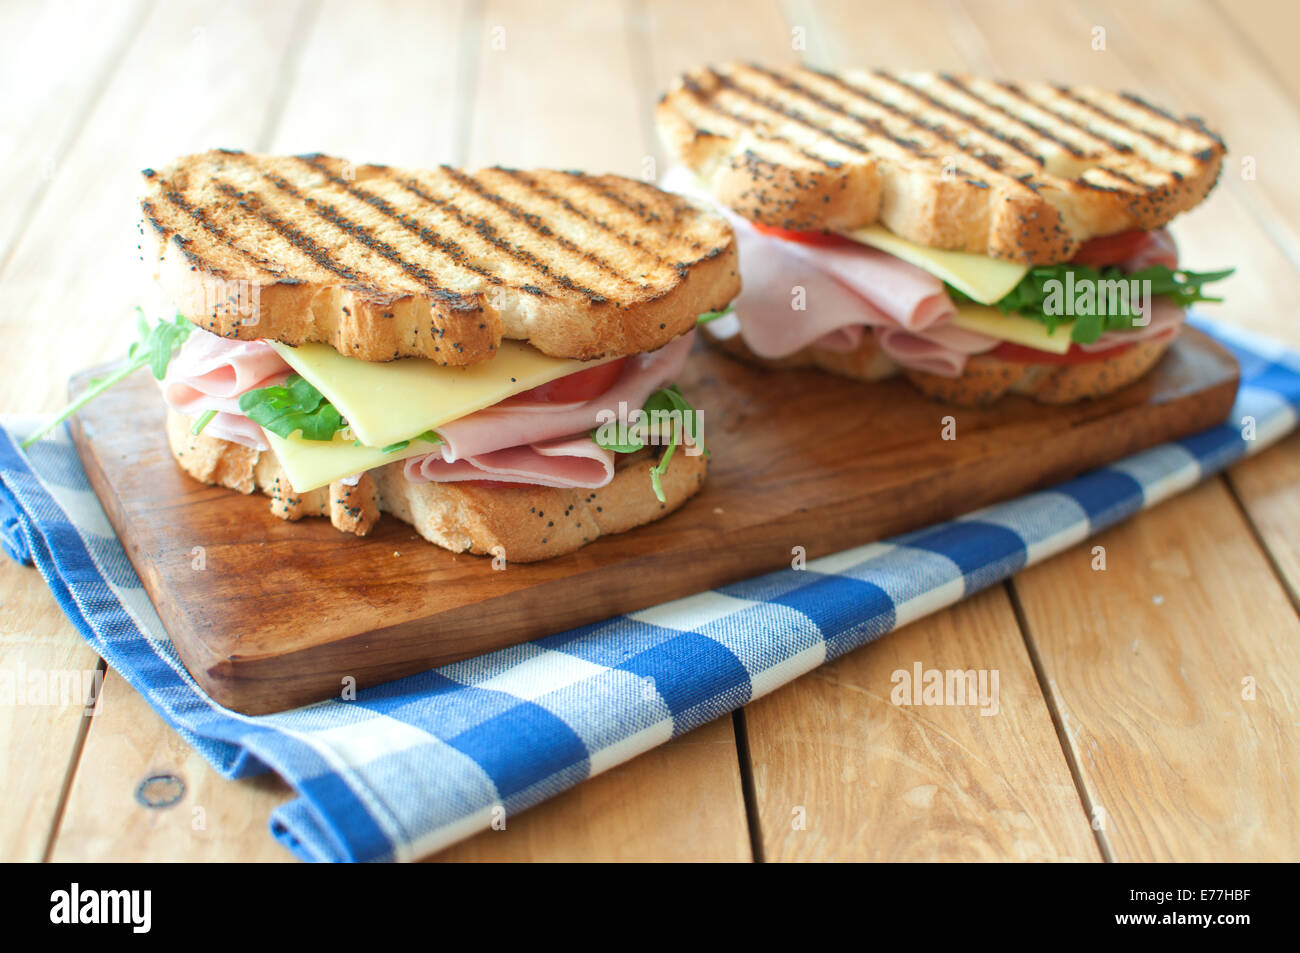 Grilled sandwiches with ham and cheese - Stock Image